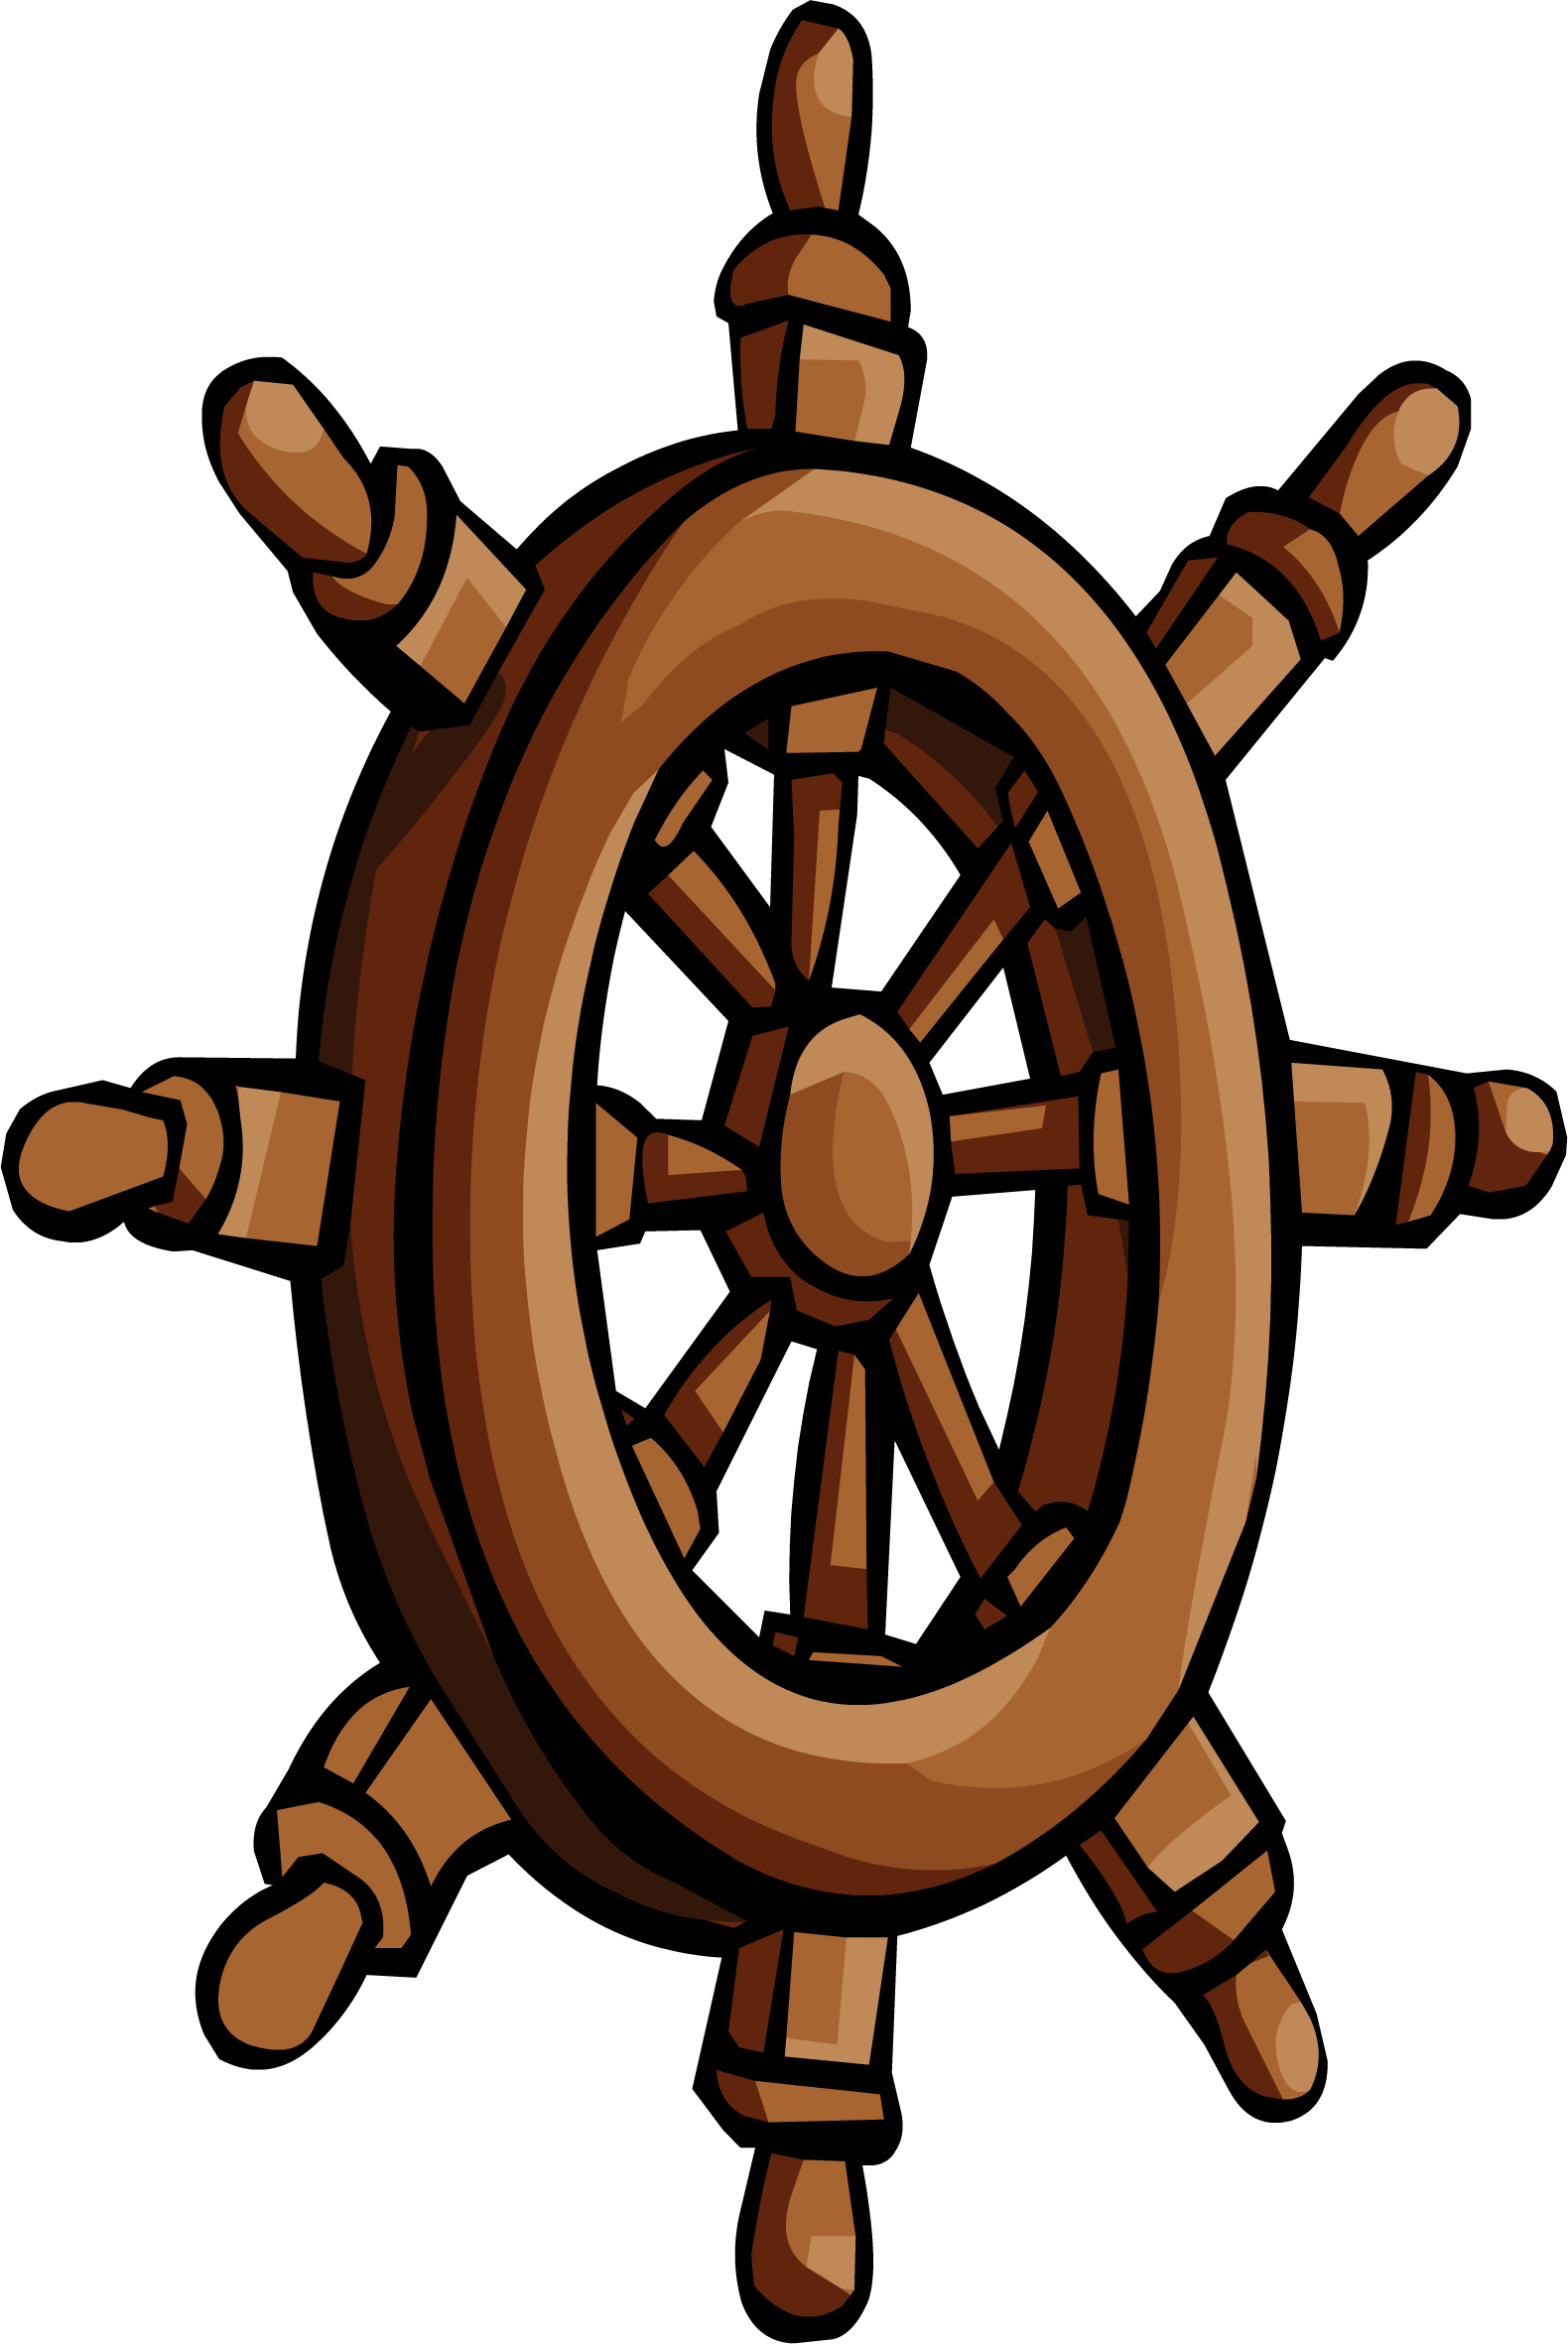 Image s sprite png. Captain clipart ship wheel clip art stock